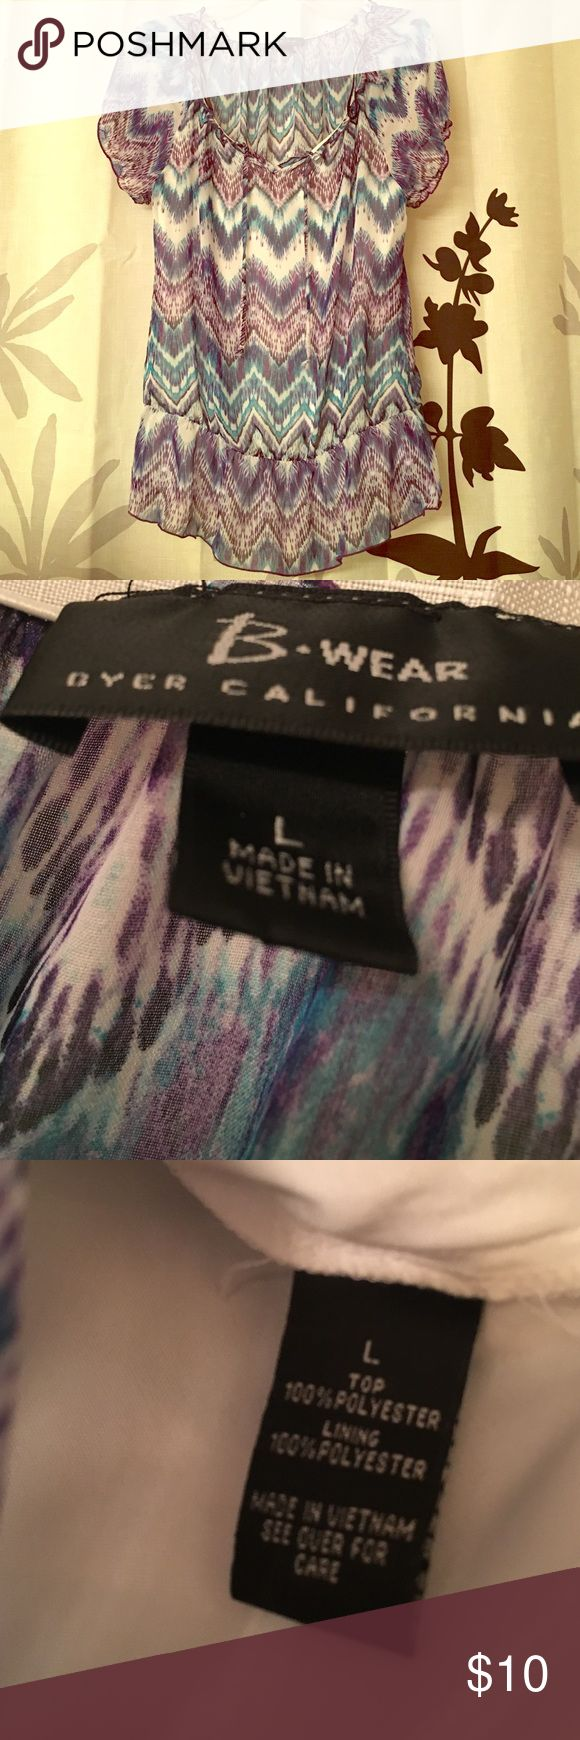 Breezy blouse with built in cami Purple and turquoise pattern. Very cute! Byer California Shirts & Tops Blouses